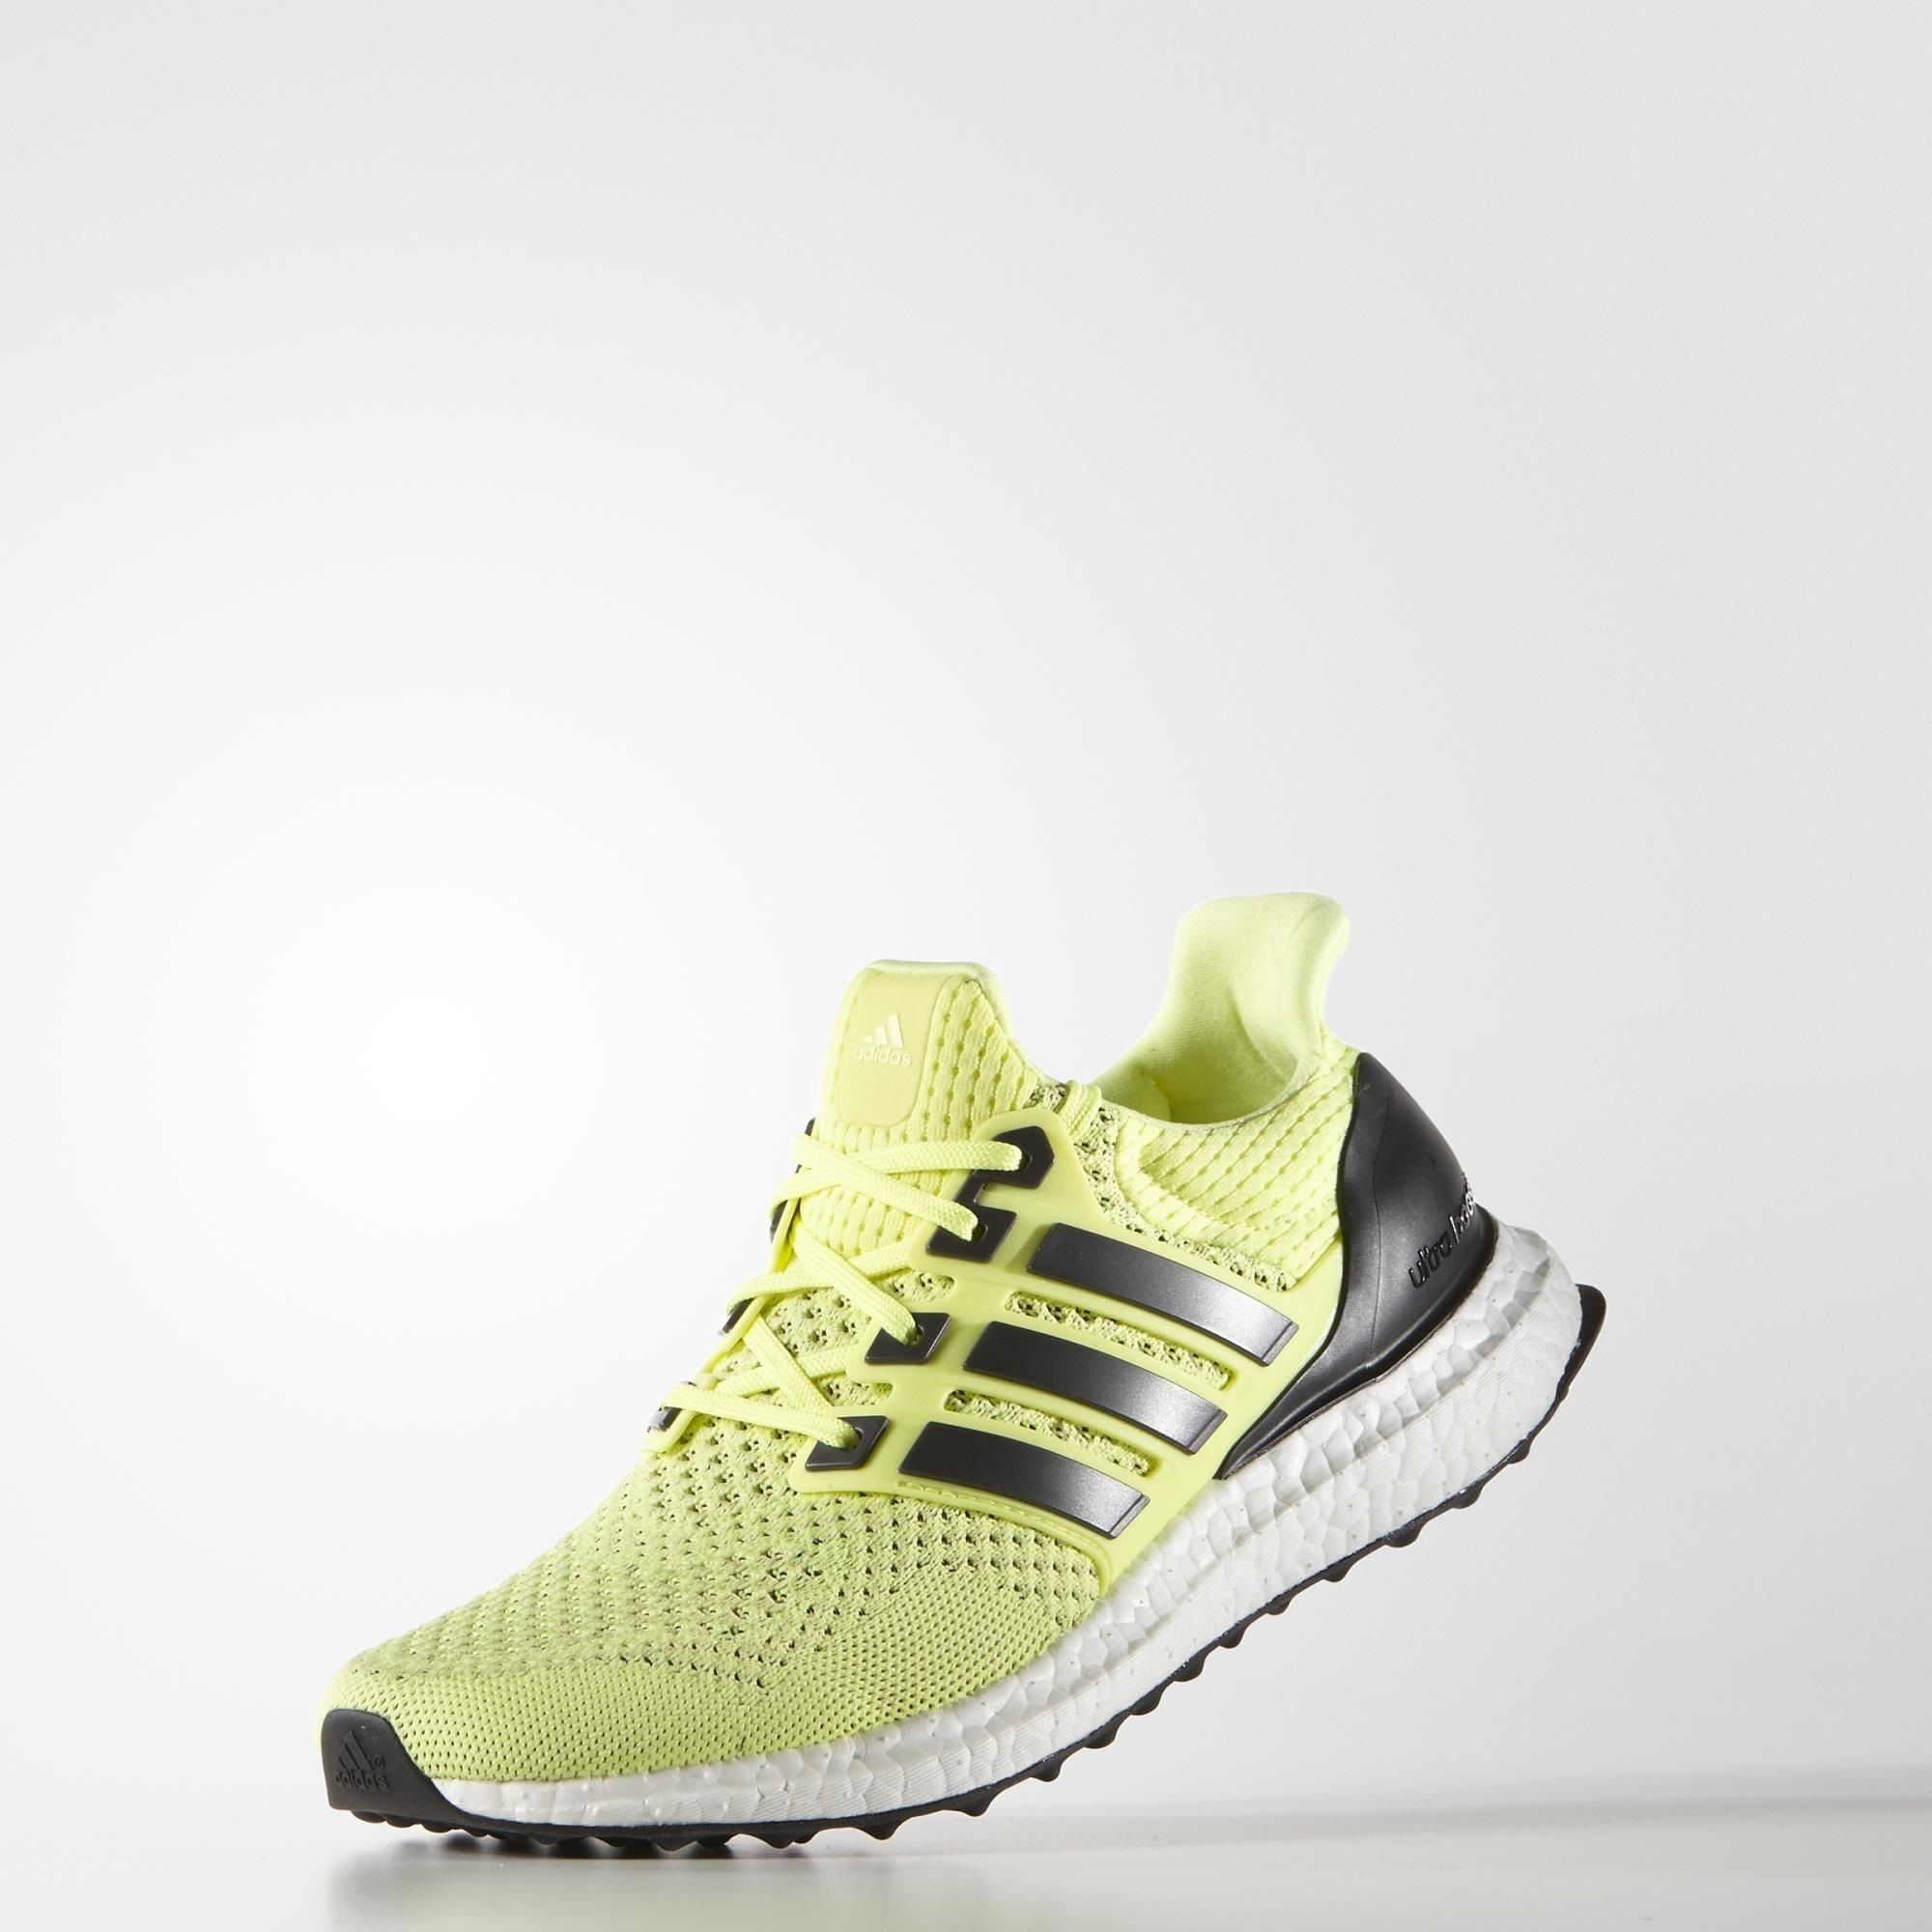 adidas Ultra Boost Shoes - Frozen Yellow | adidas New Zealand